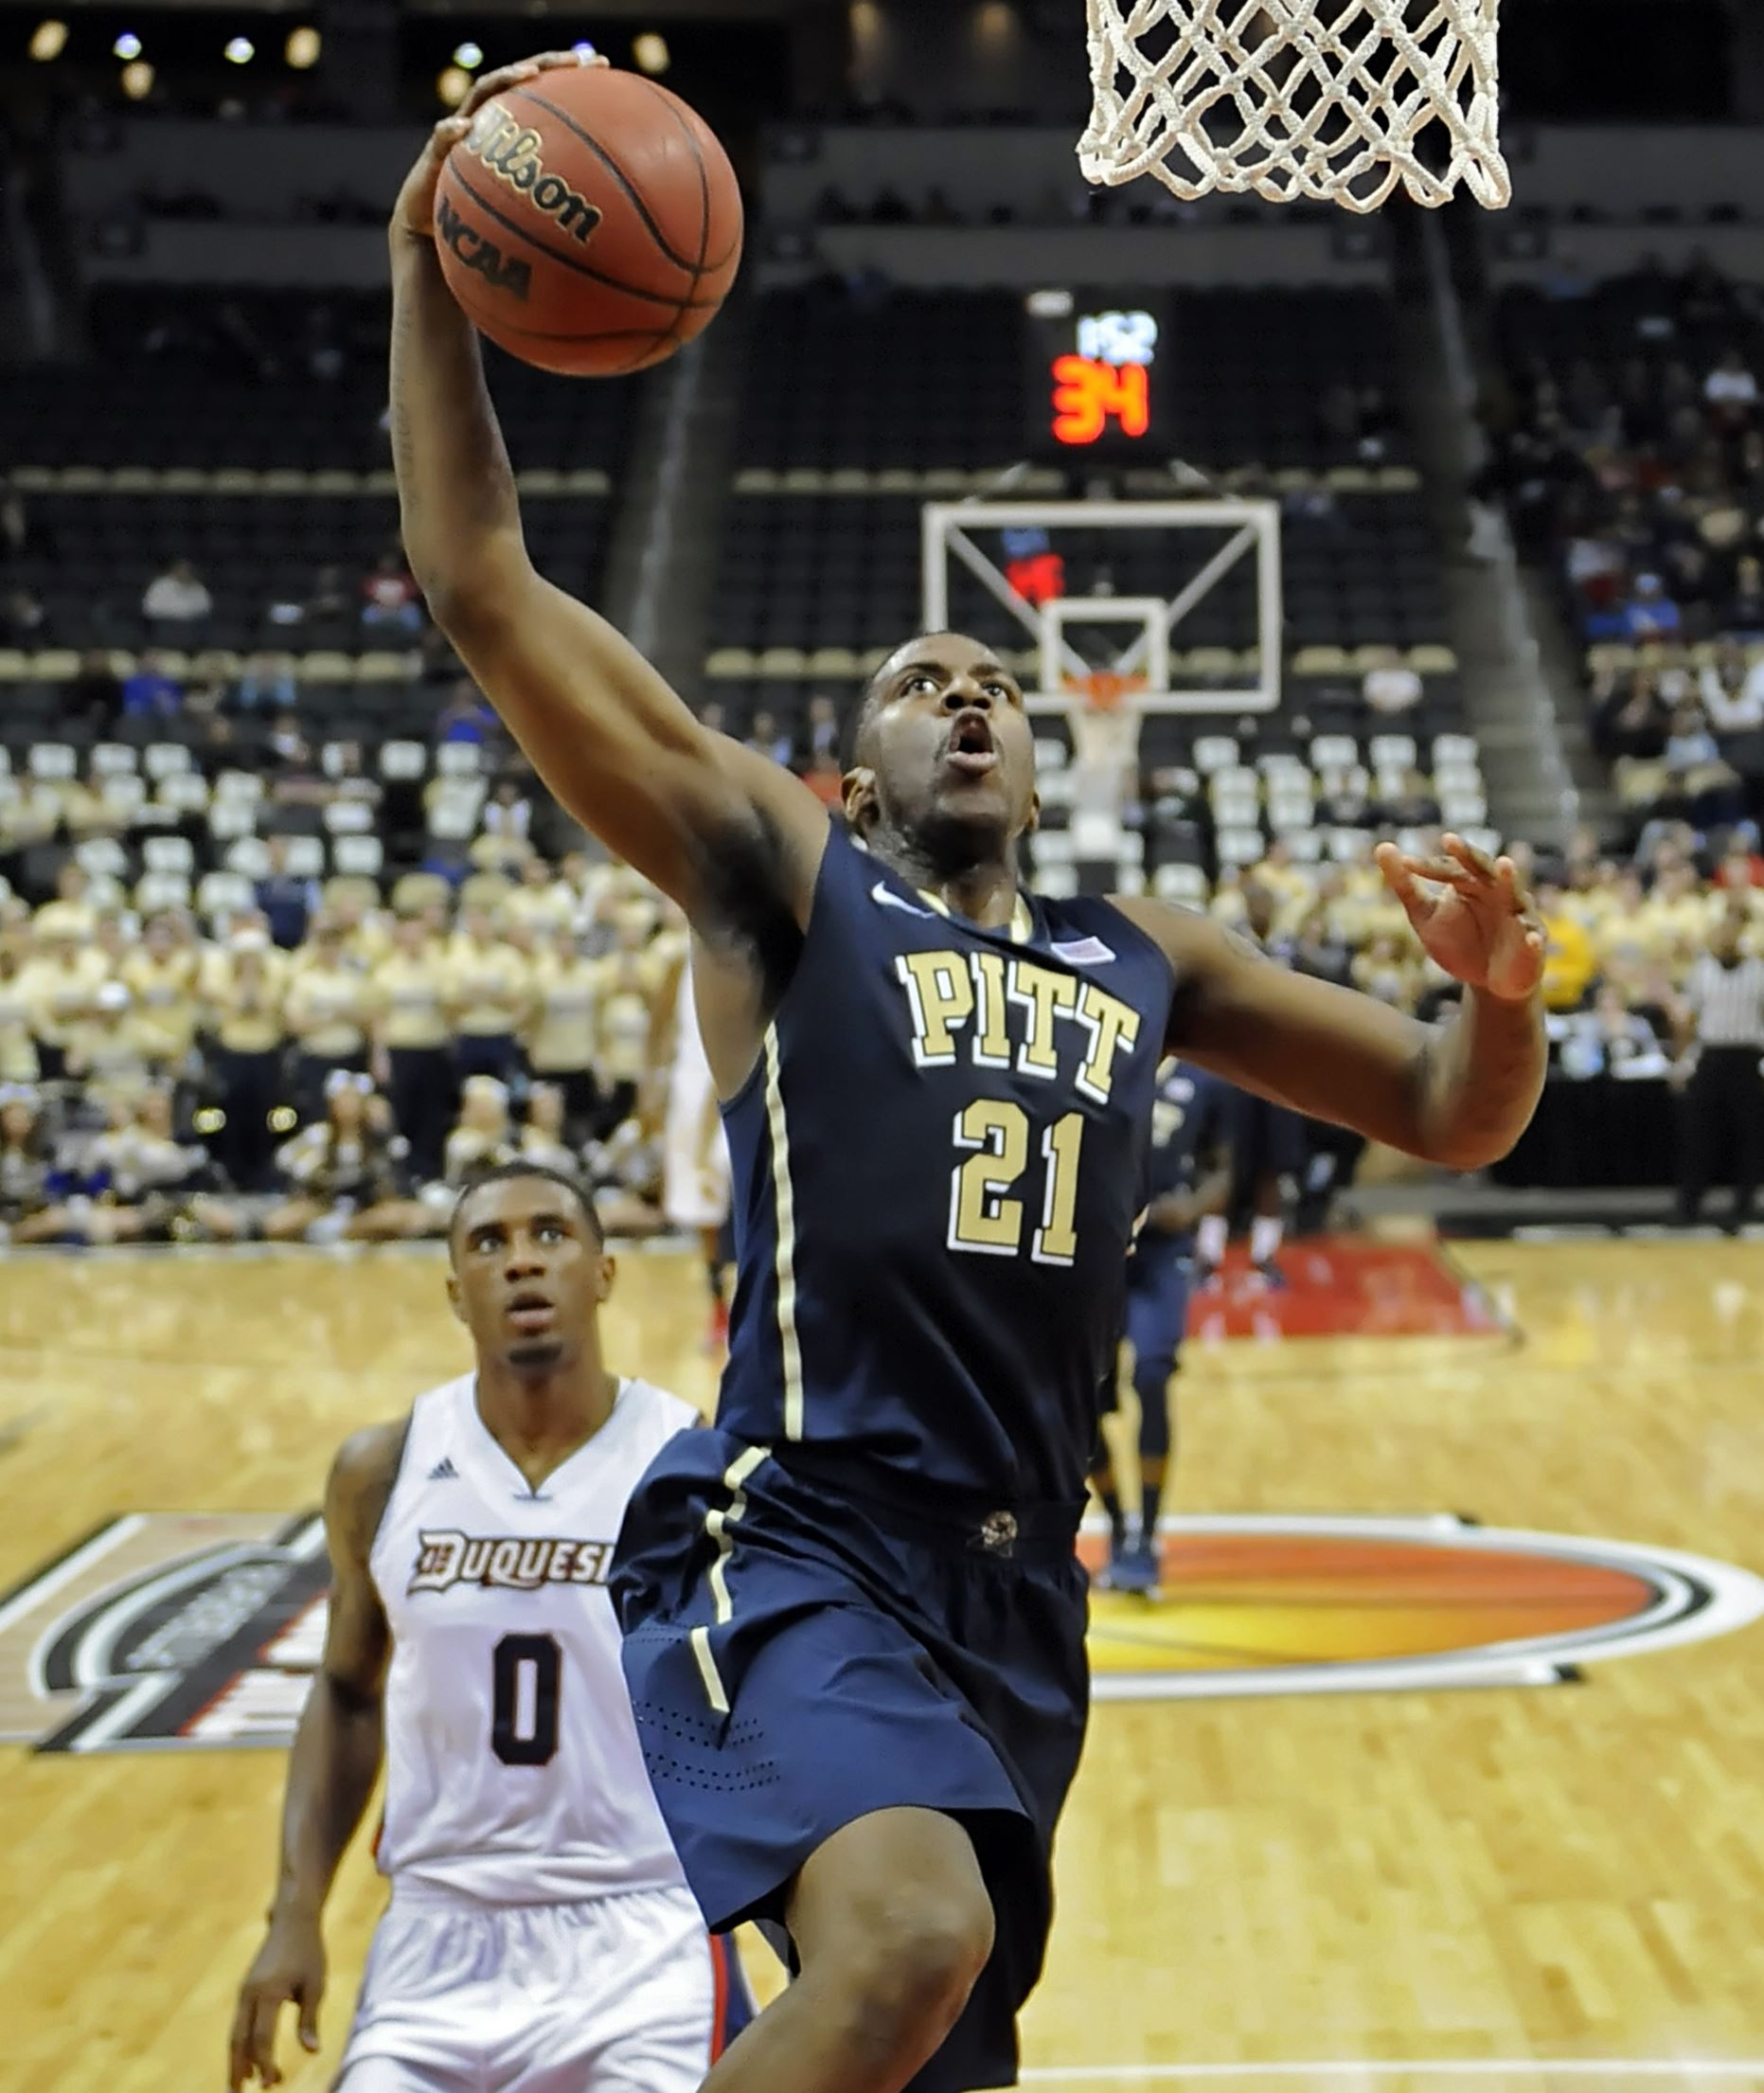 Lunardi says Pitt is in, Lamar Patterson isn't going to take his word for it.